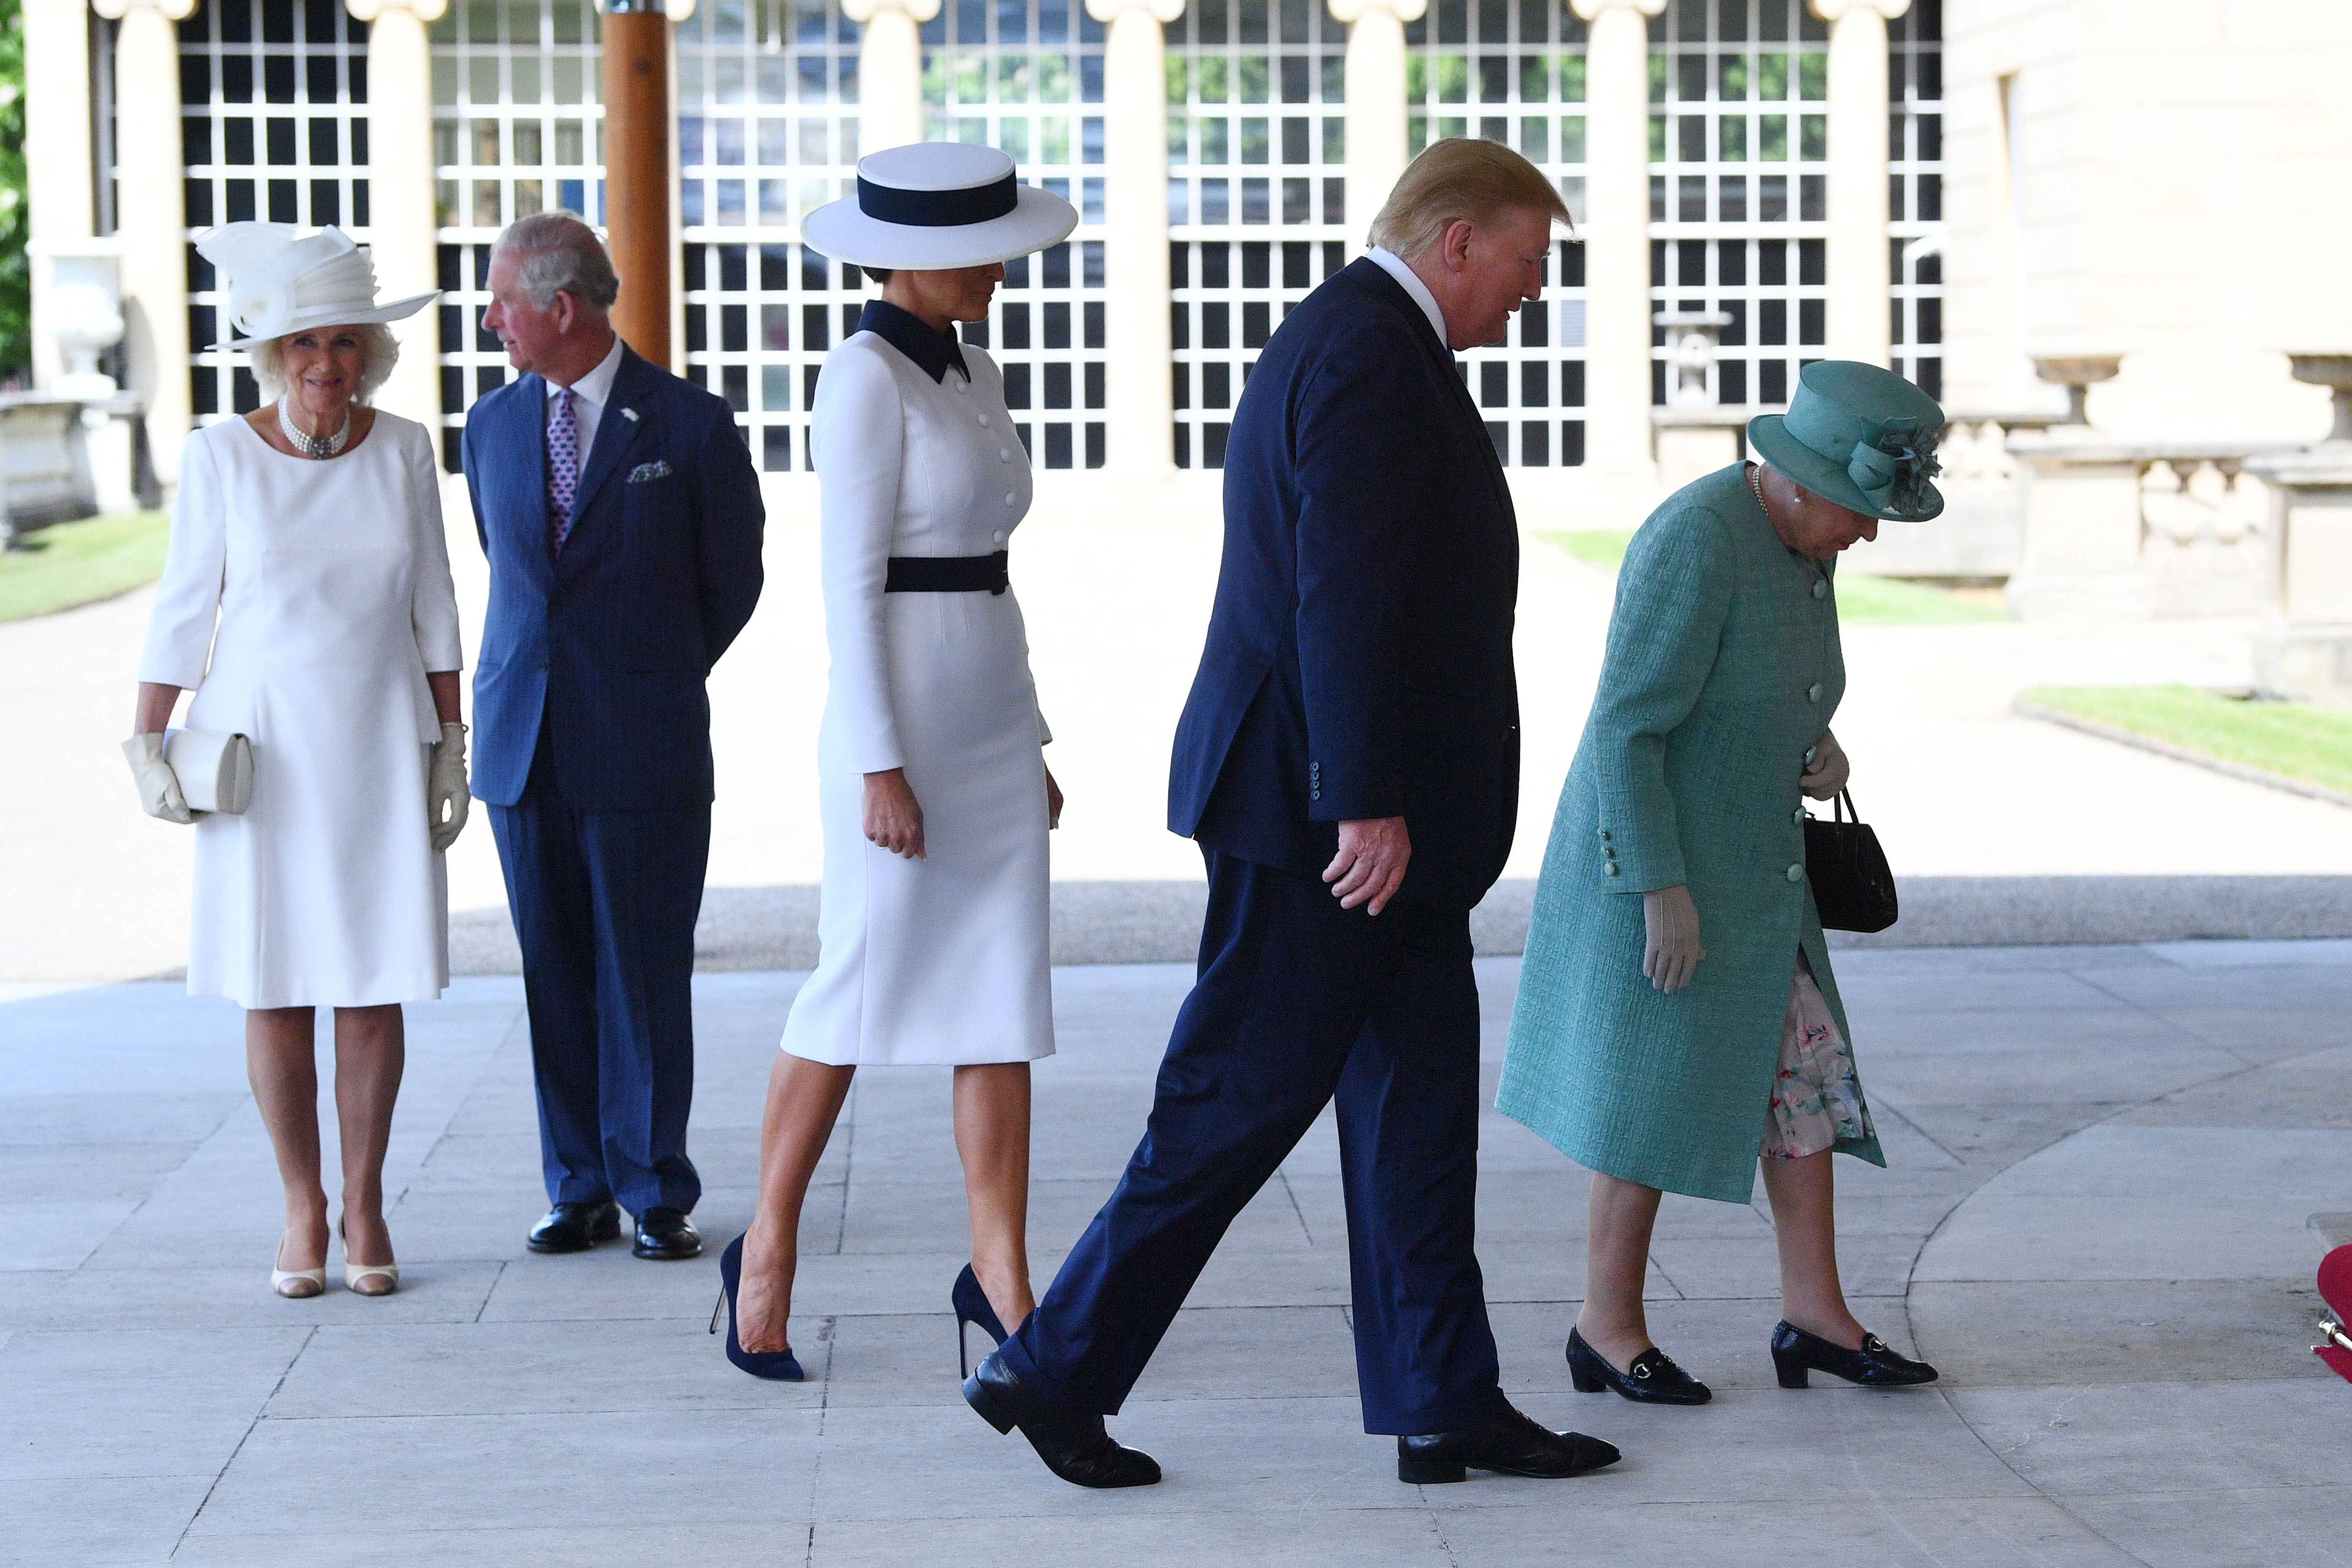 U.S. President Donald Trump and First Lady Melania Trump are greeted by Queen Elizabeth II, Camilla, Duchess of Cornwall and Prince Charles, Prince of Wales at Buckingham Palace on June 3, 2019 in London, England. (Victoria Jones - WPA Pool/Getty Images)